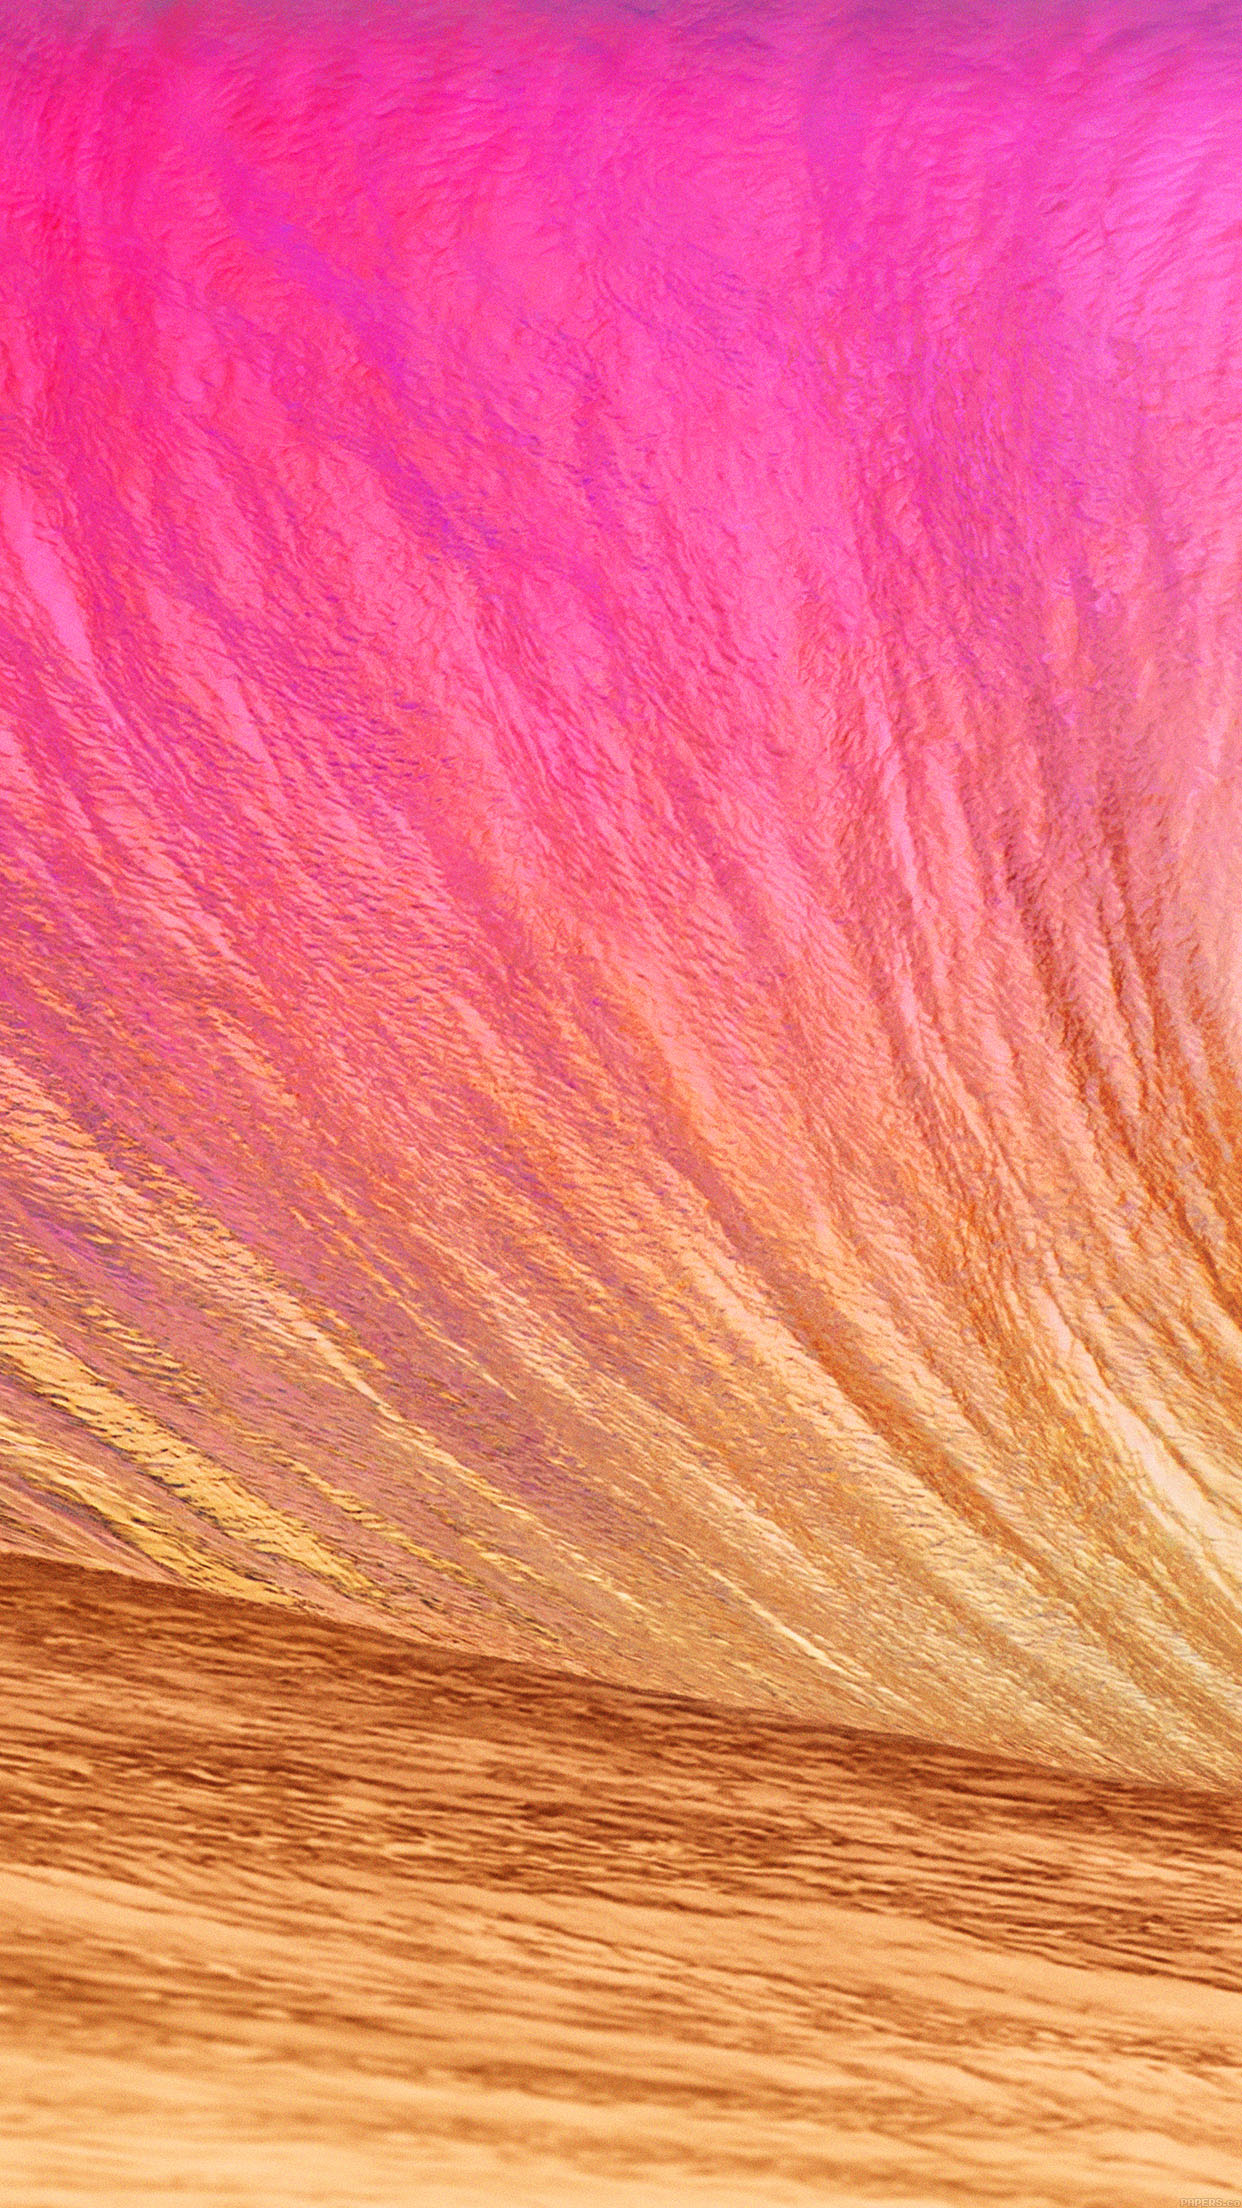 Iphone6papers Mc13 Wallpaper Gold Wave Apple Sea